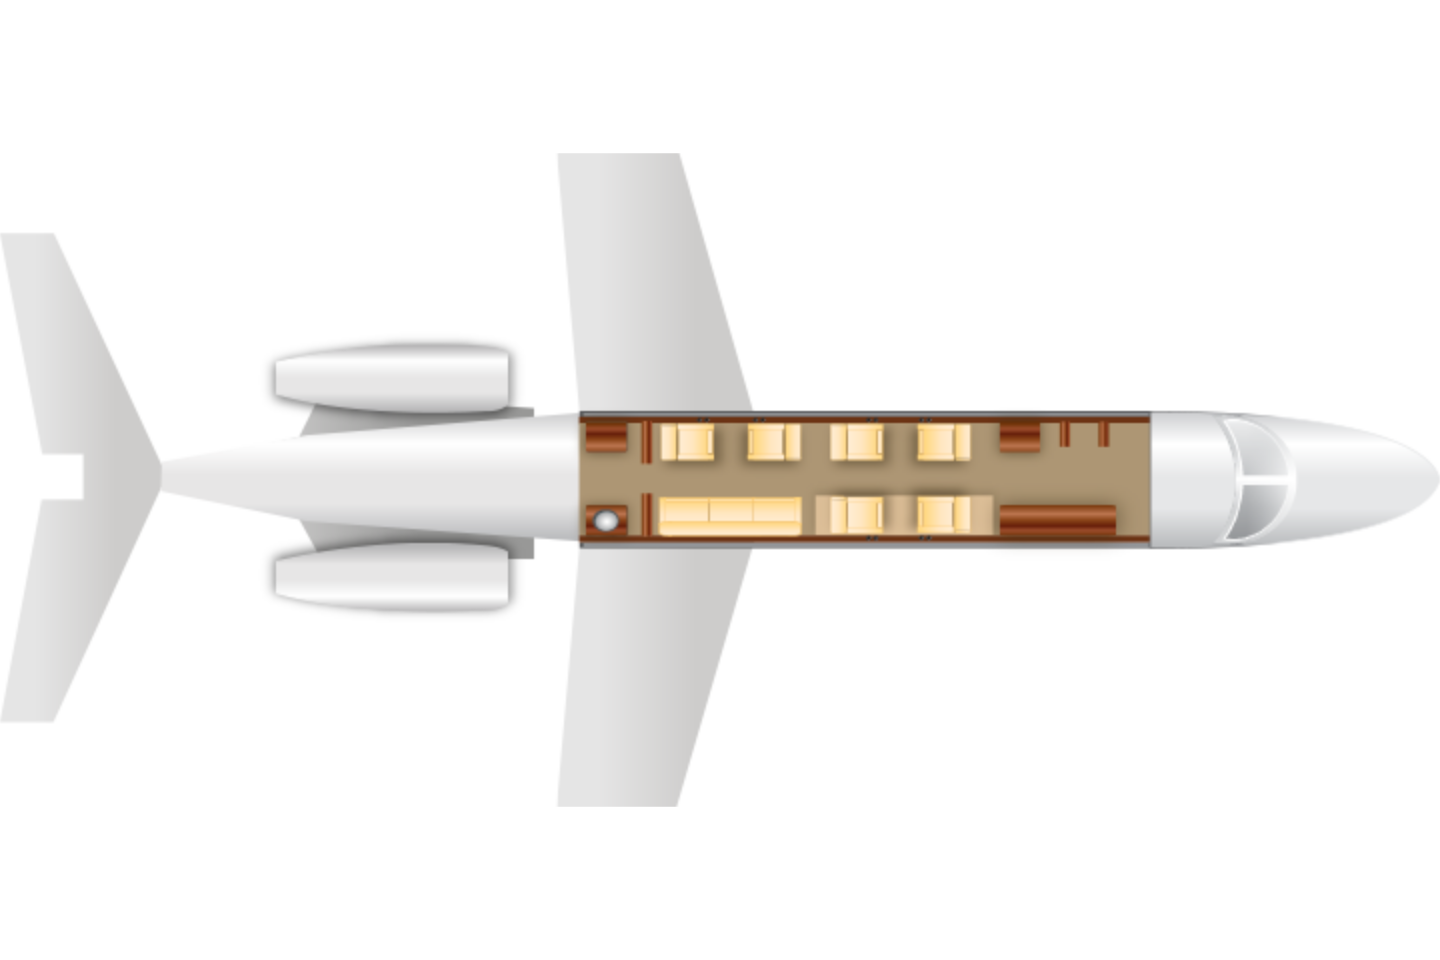 hawker-4000-transparent-1411766526.png Floor Plan View